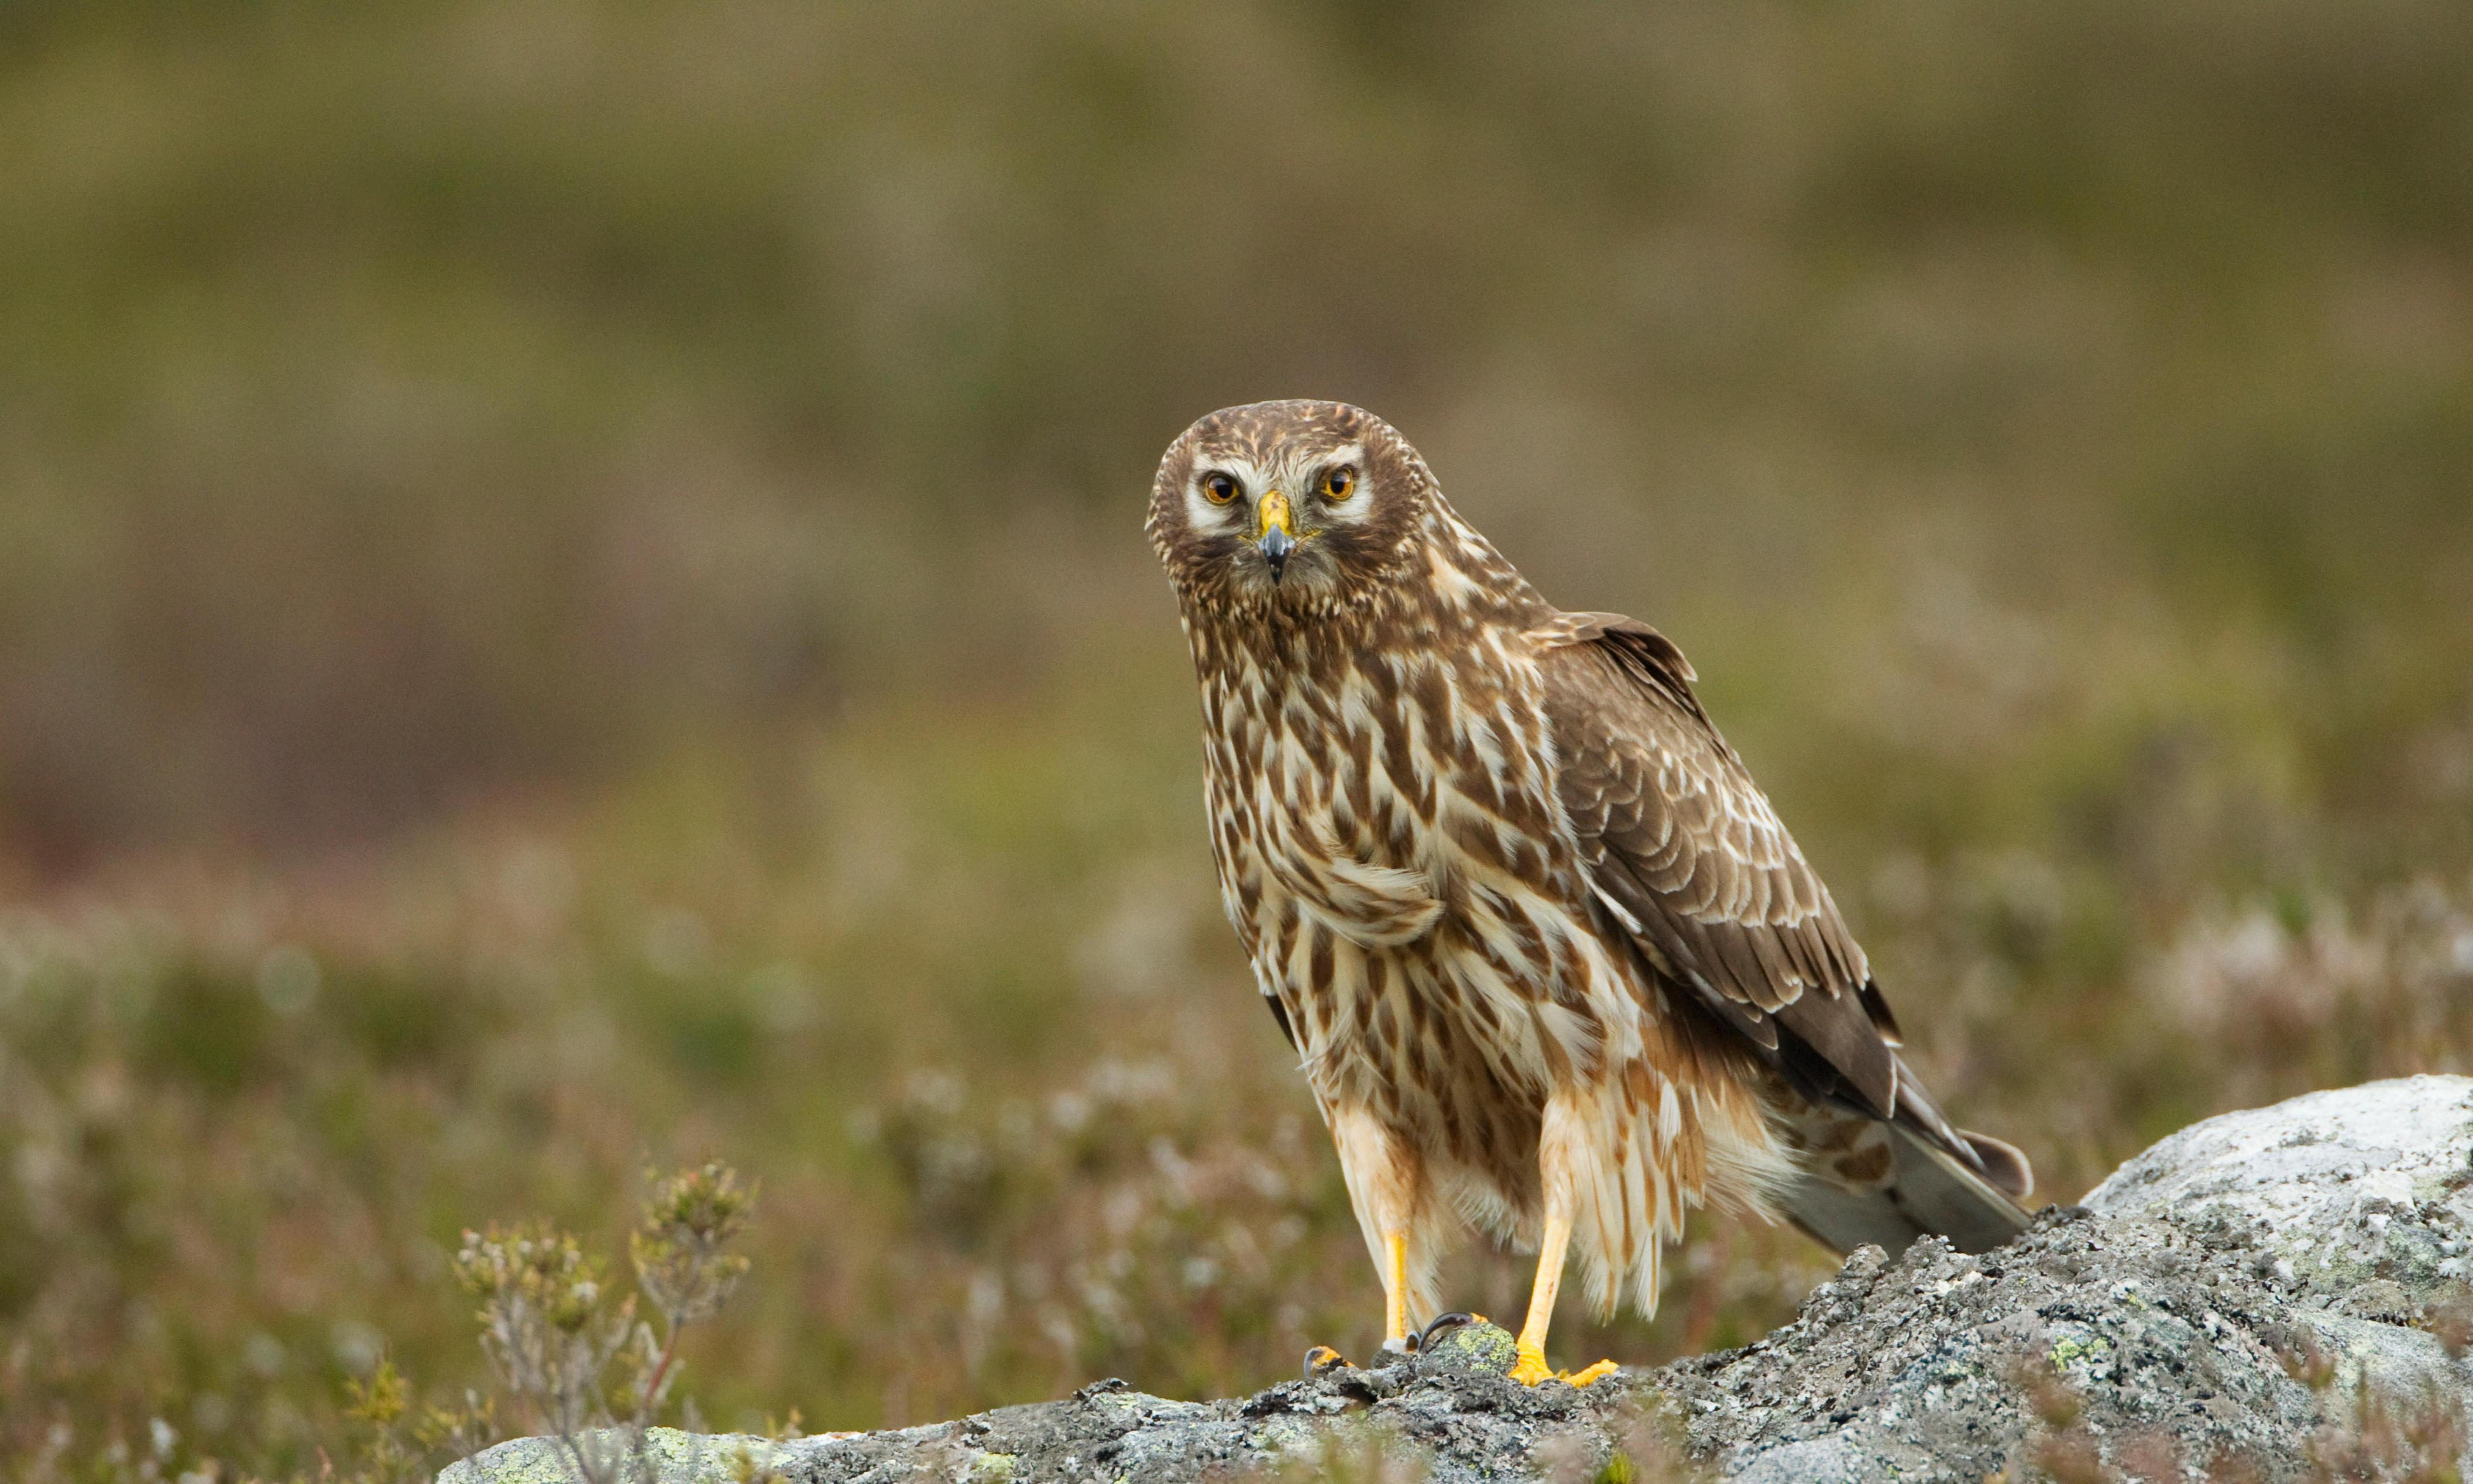 Seven in 10 hen harriers in UK study likely illegally killed